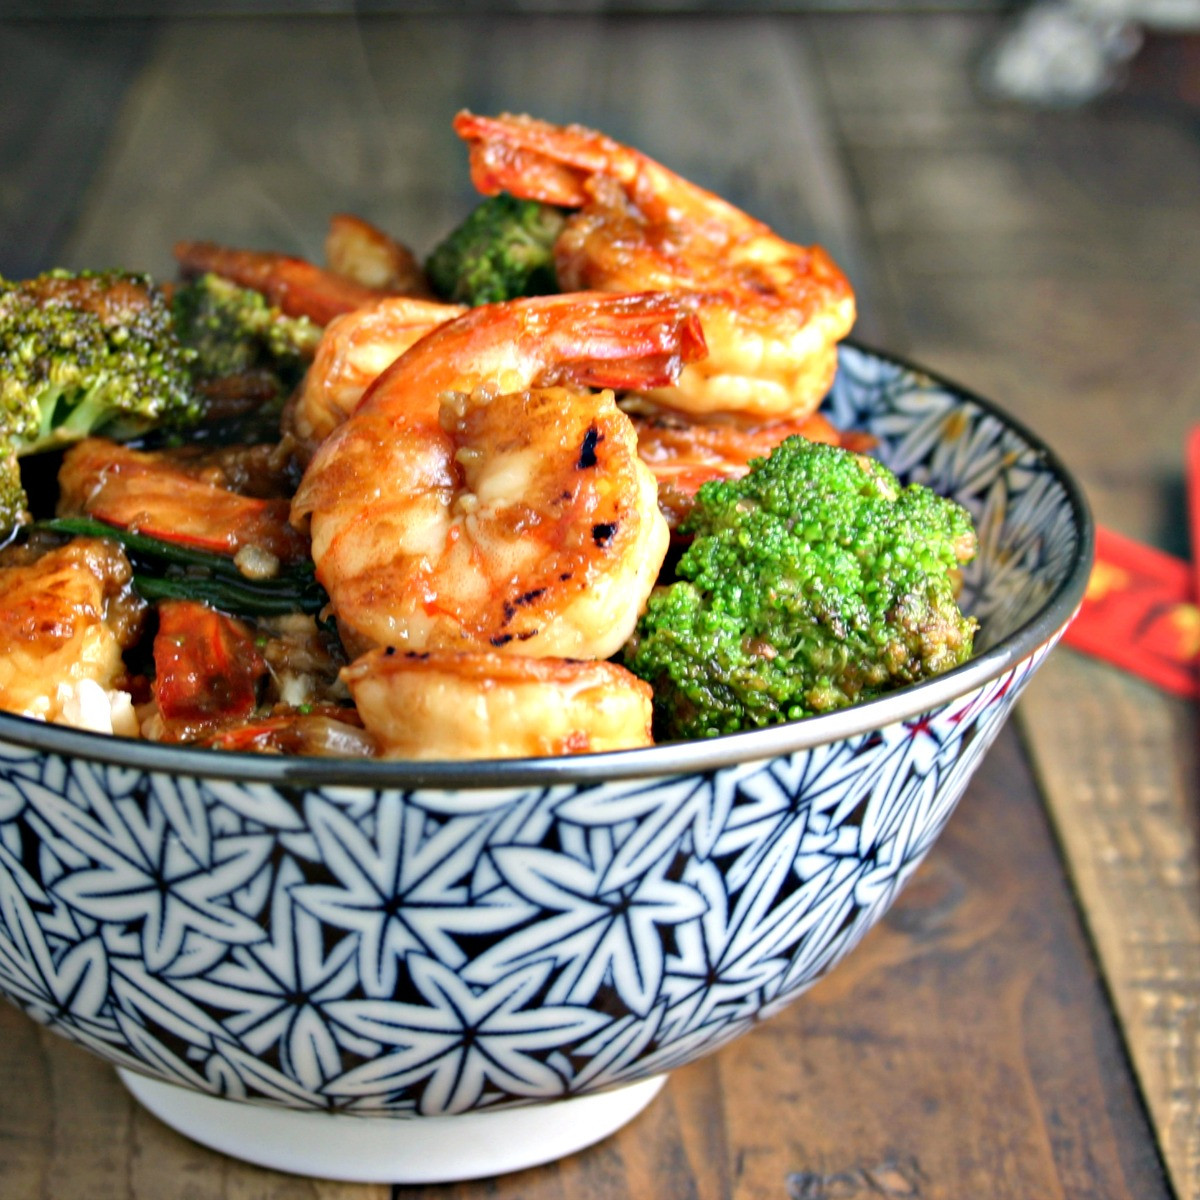 Shrimp With Broccoli  Chinese Shrimp and Broccoli Stir Fry The Weary Chef